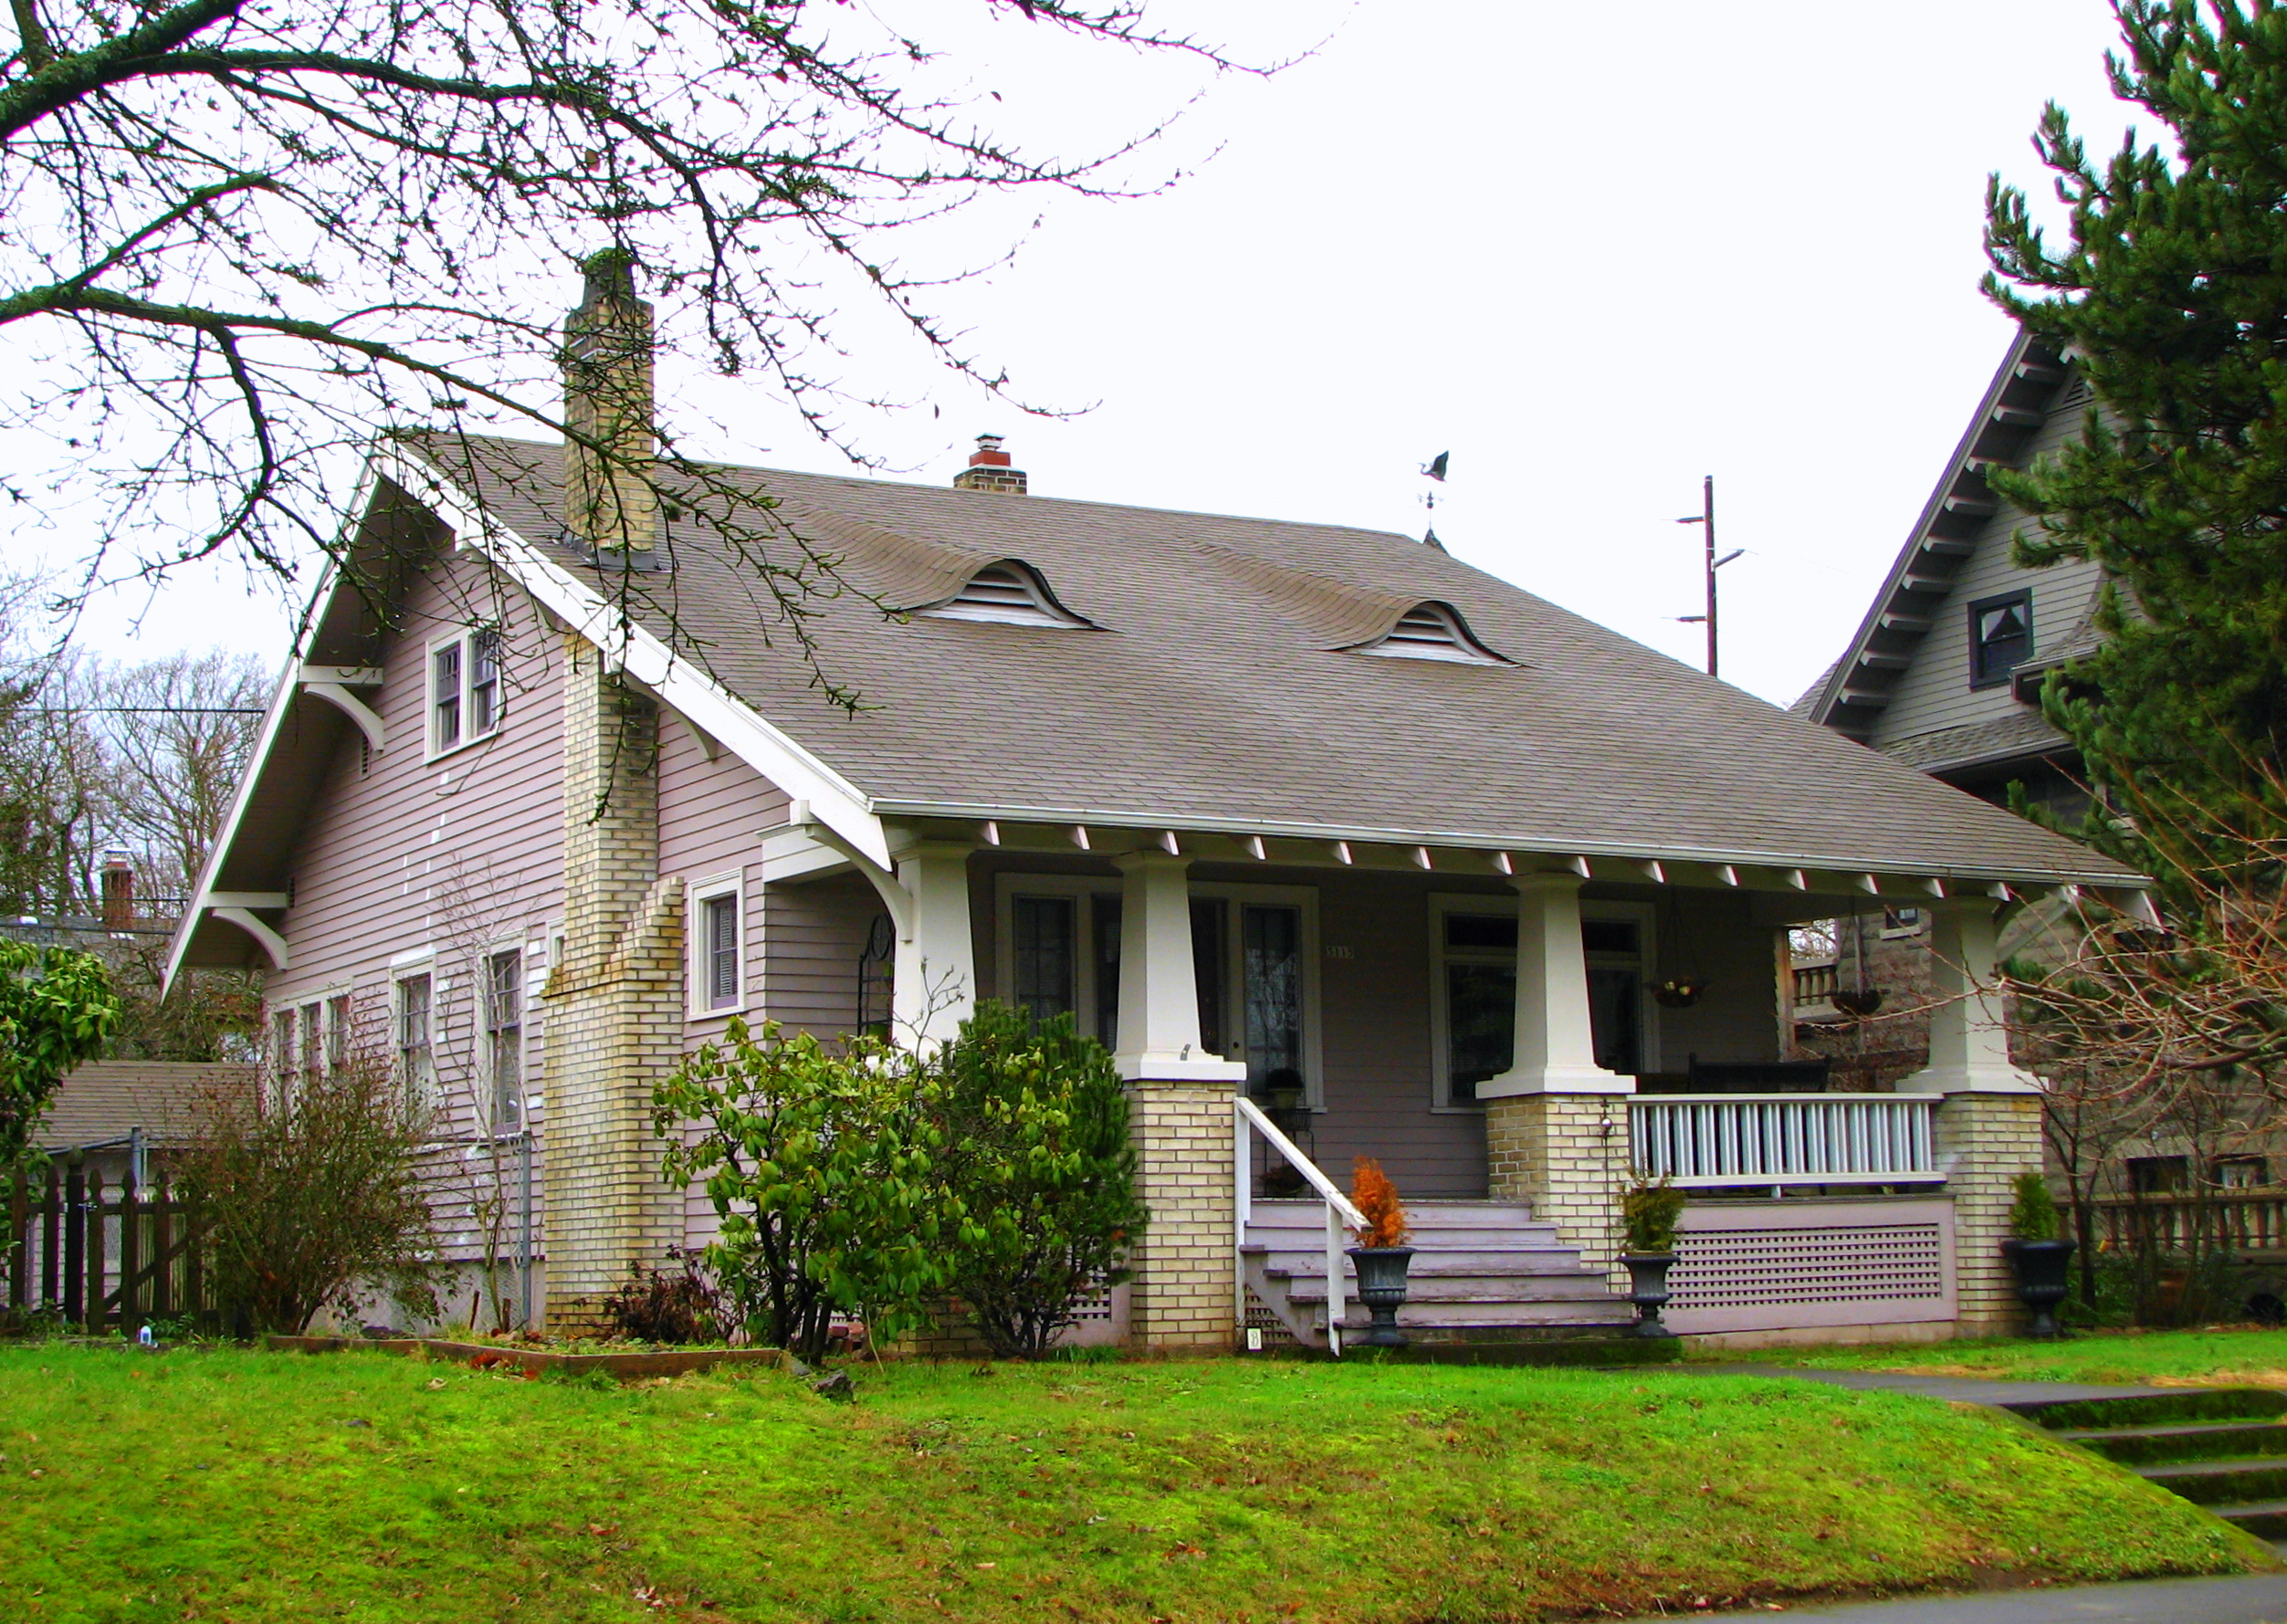 Houses for rent in portland oregon house plan 2017 for Building a home in oregon